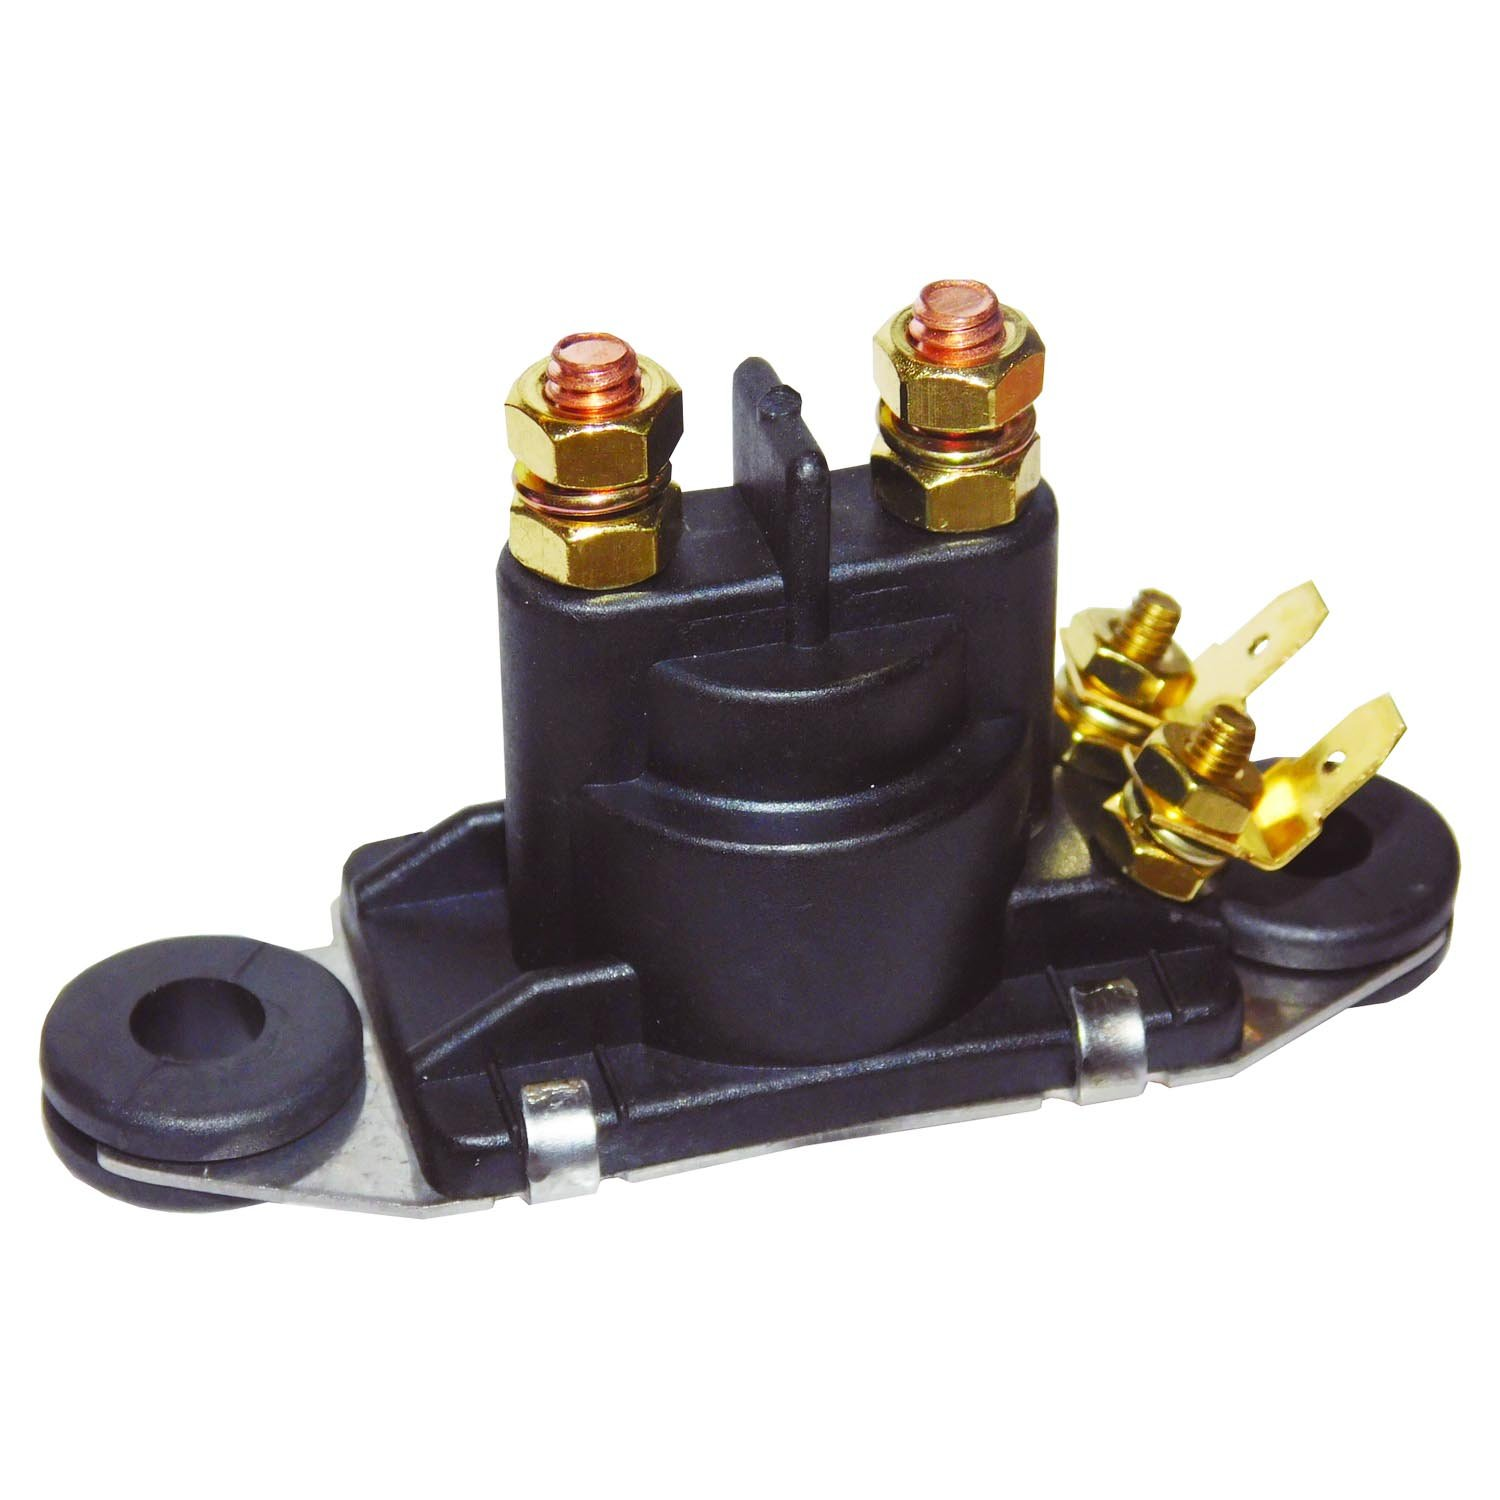 NEW STARTER SOLENOID SWITCH FITS OMC APPLICATION OUTBOARD MARINE CORP 584580